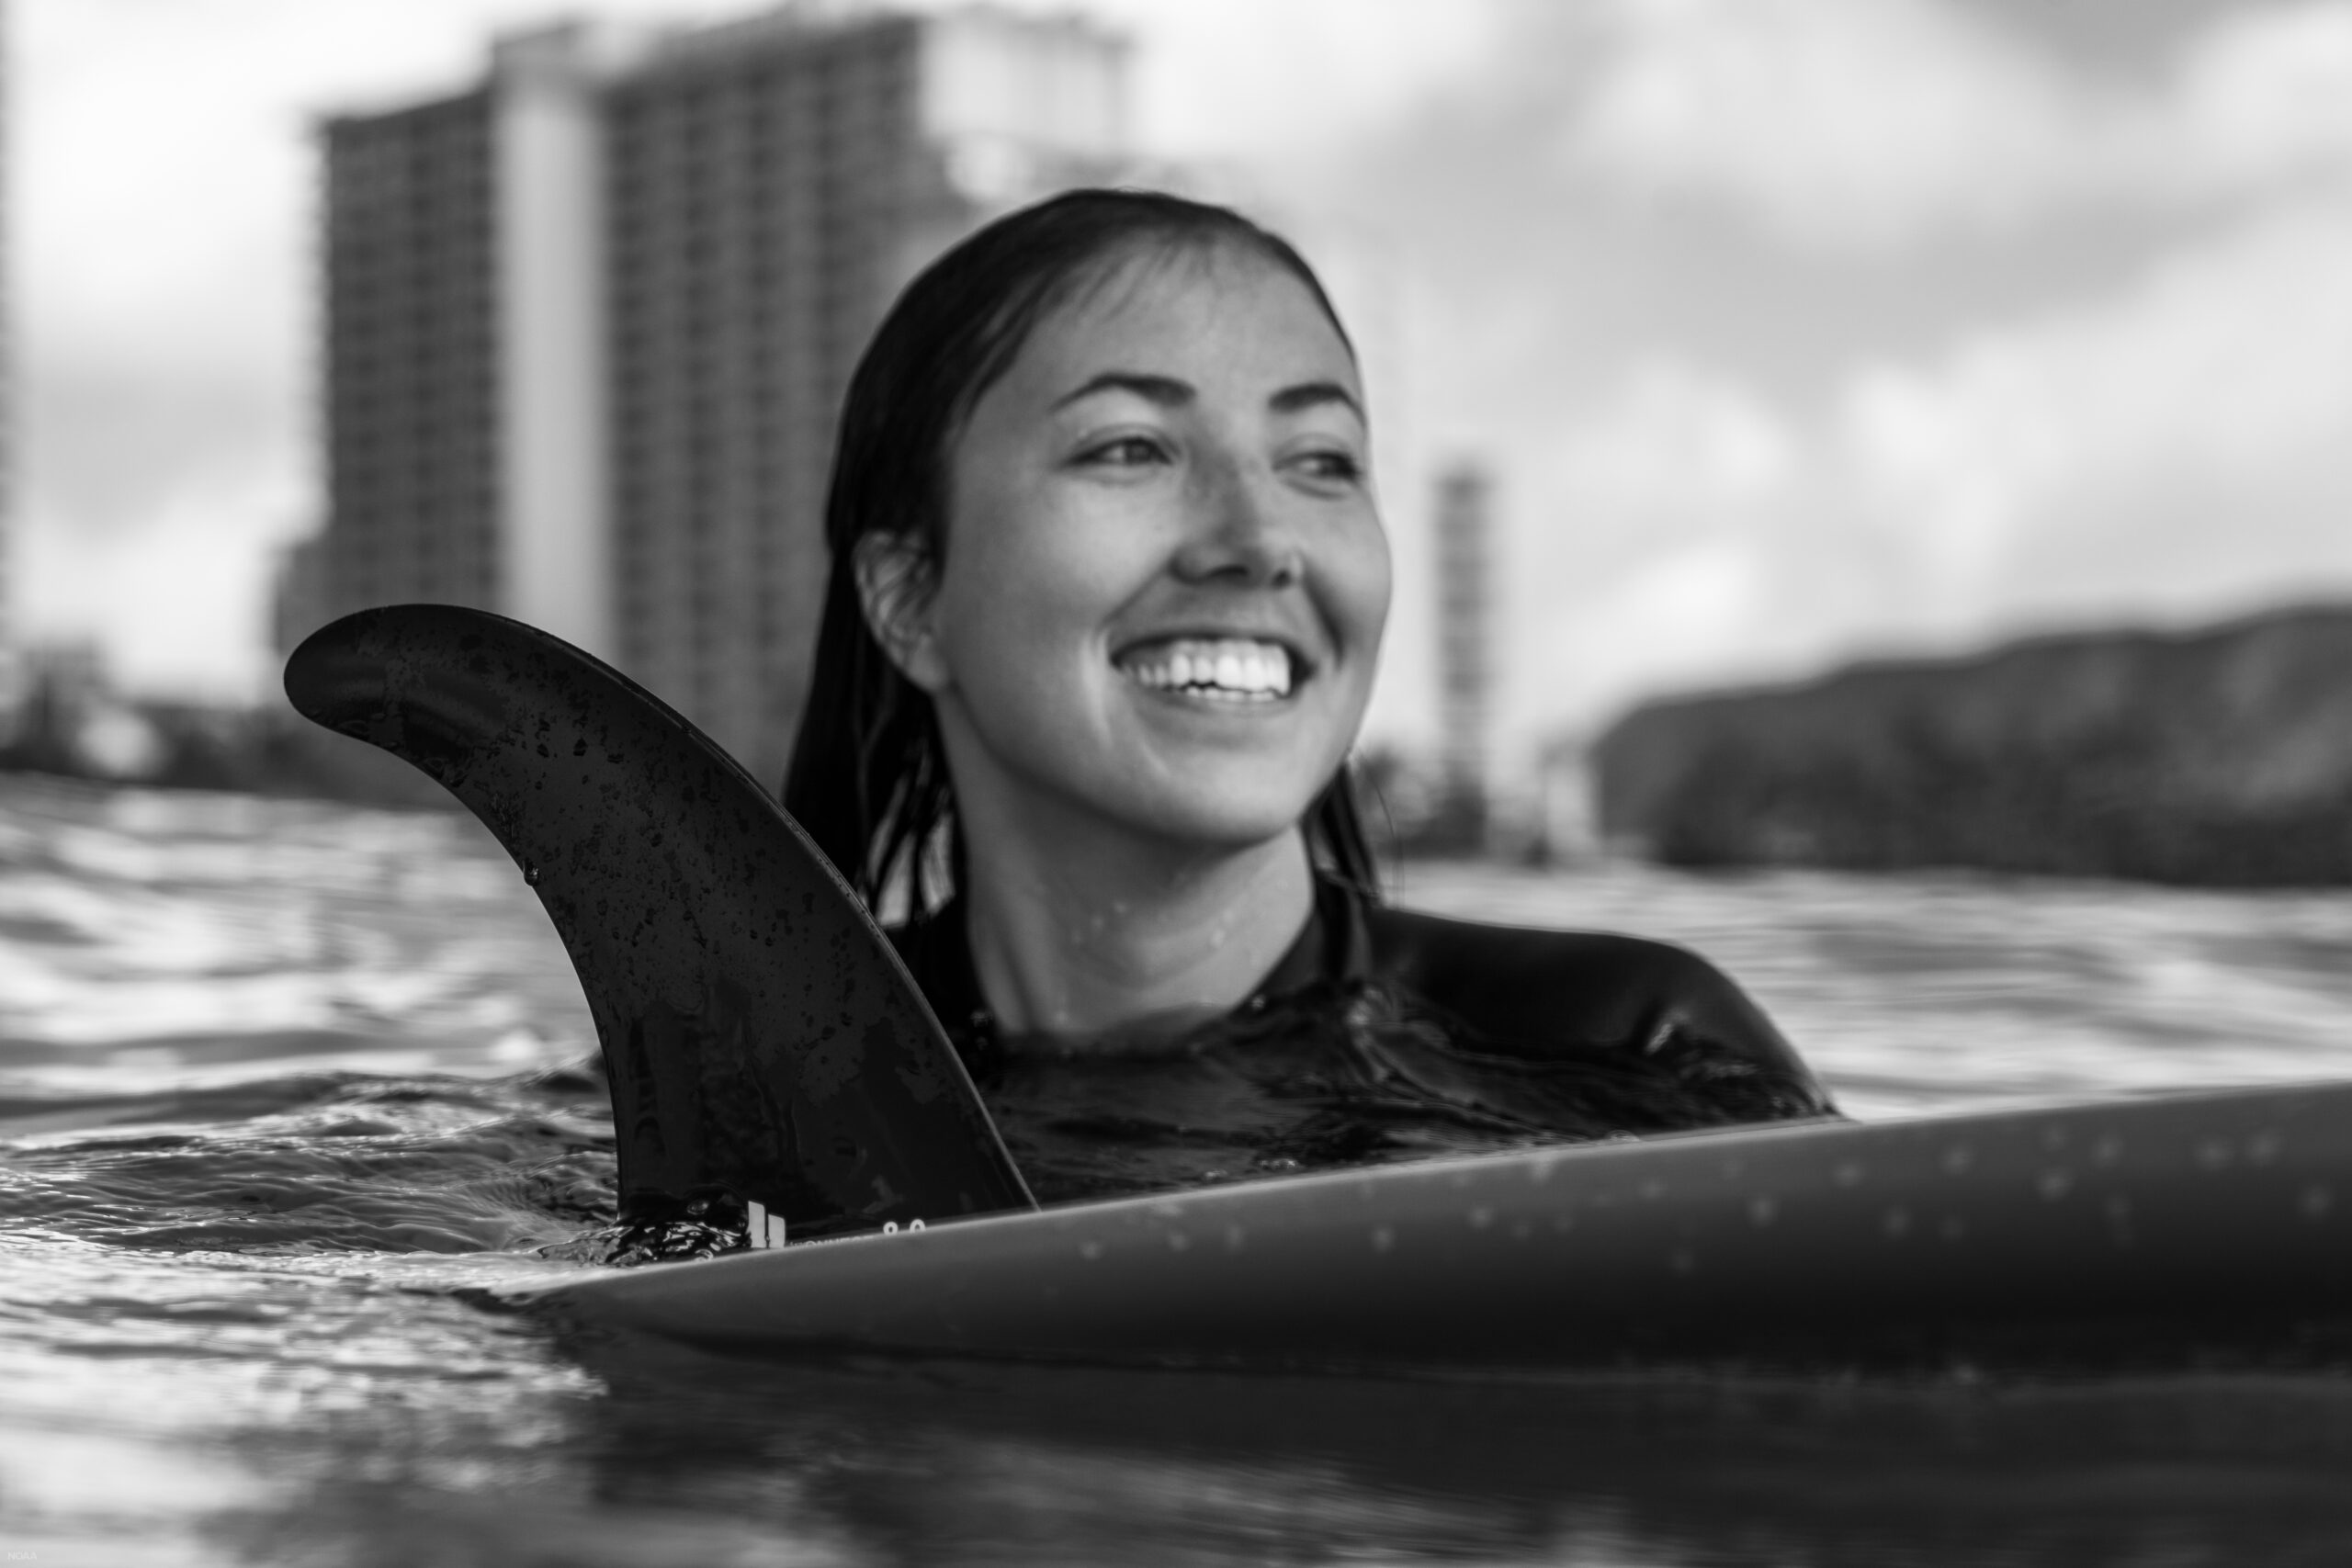 Anita Harrington is an avid surfer, and when she is not in the lab, you can find her exploring new surf breaks around Oahu